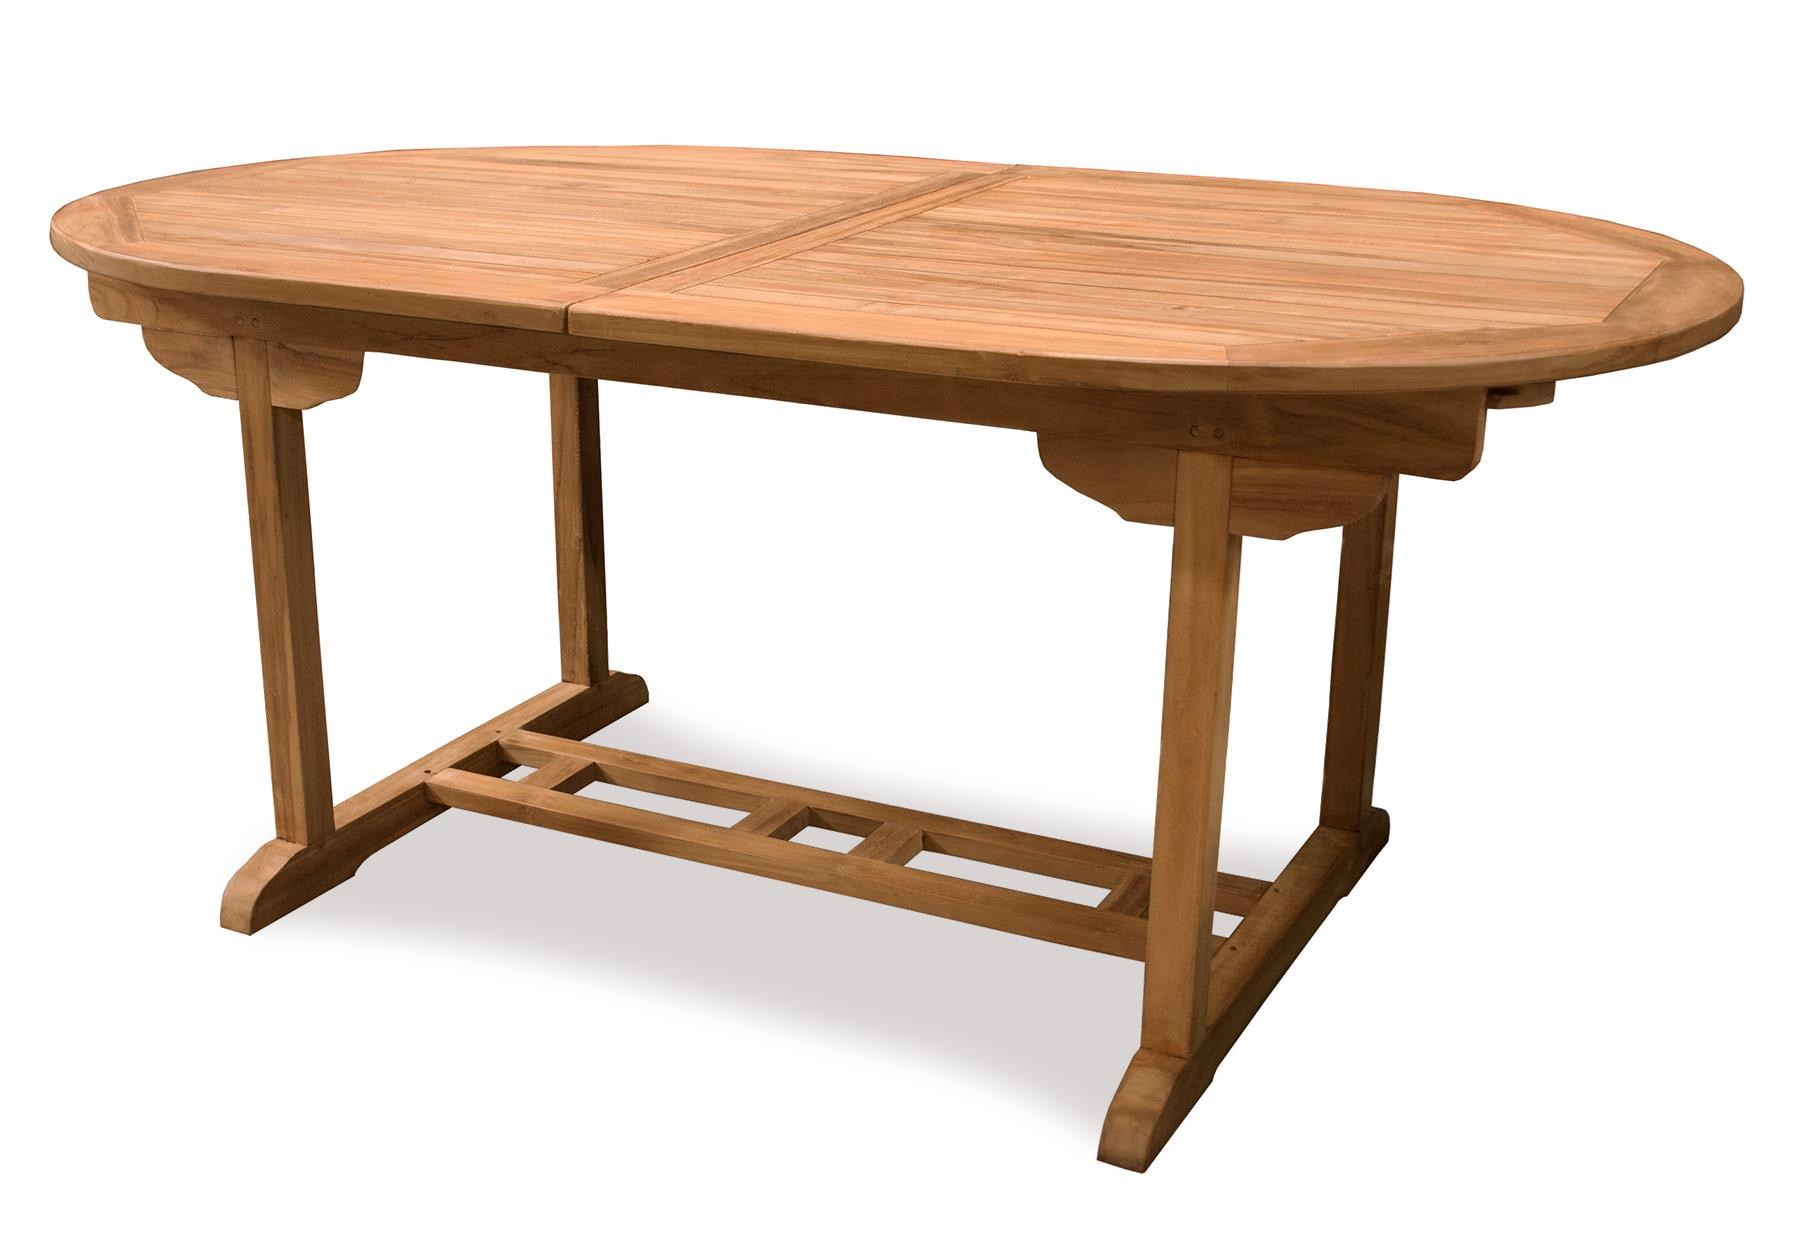 BeachCraft Bali Expandable Teak Dining Table - Item Number: DT9870